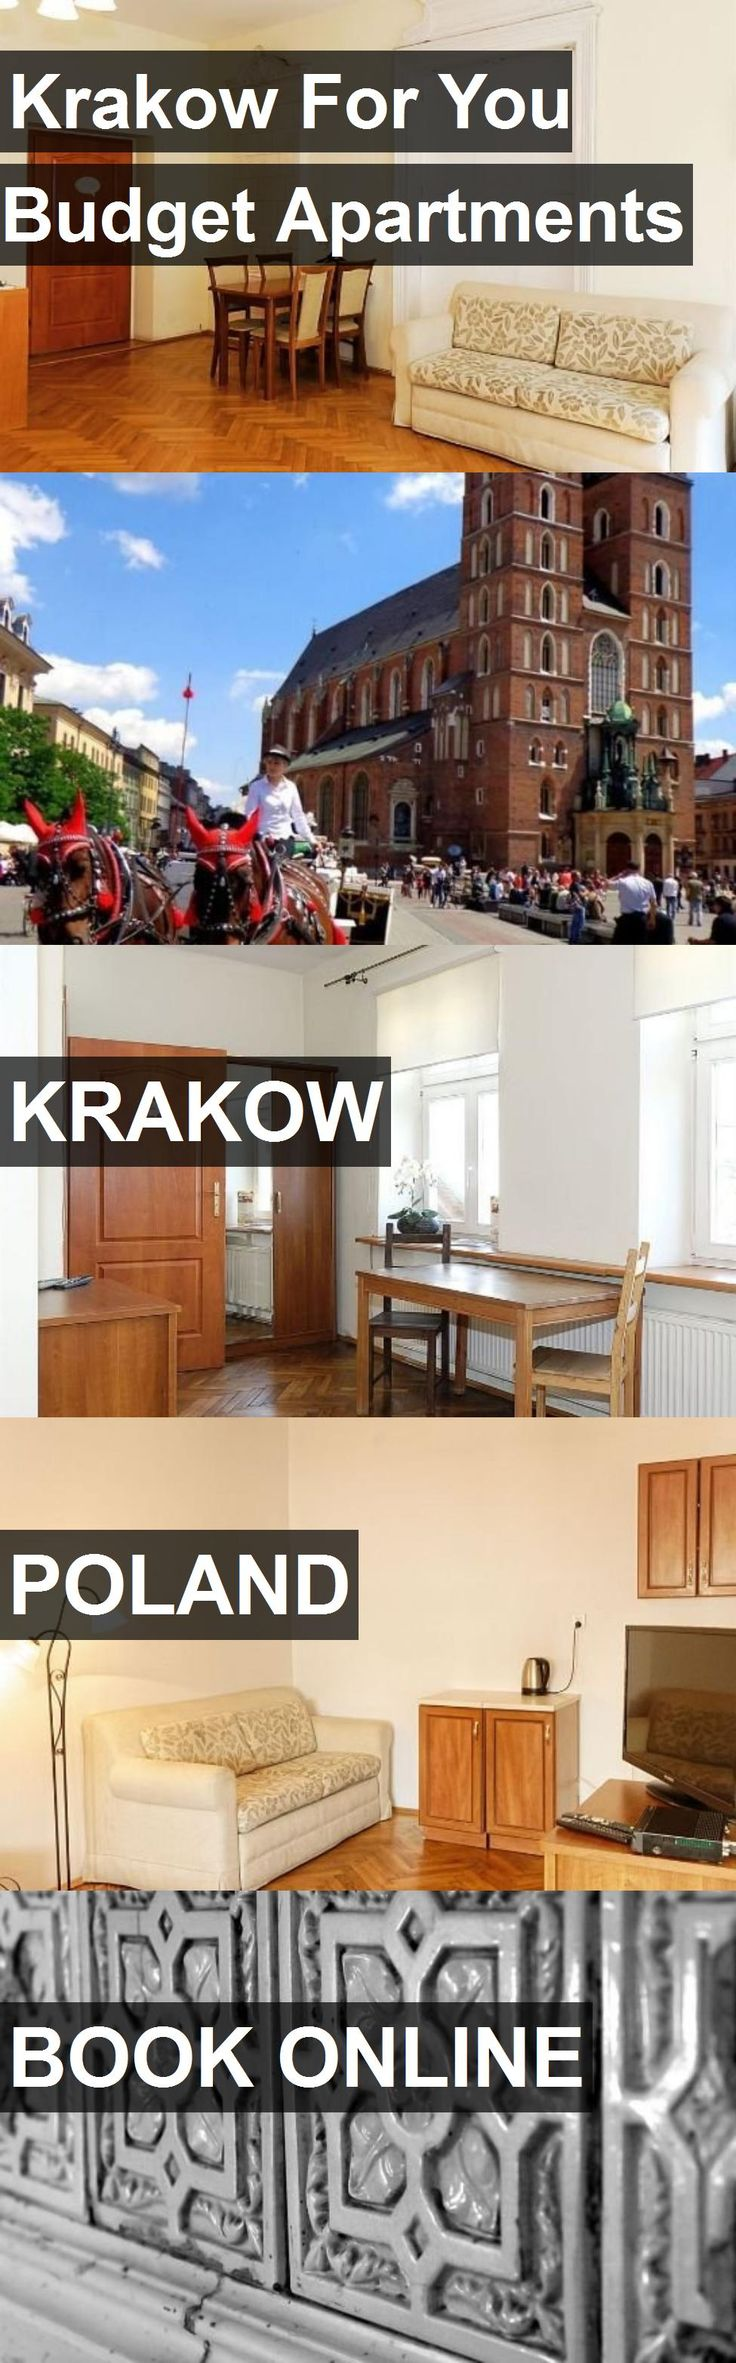 Hotel Krakow For You Budget Apartments in Krakow, Poland. For more information, photos, reviews and best prices please follow the link. #Poland #Krakow #KrakowForYouBudgetApartments #hotel #travel #vacation